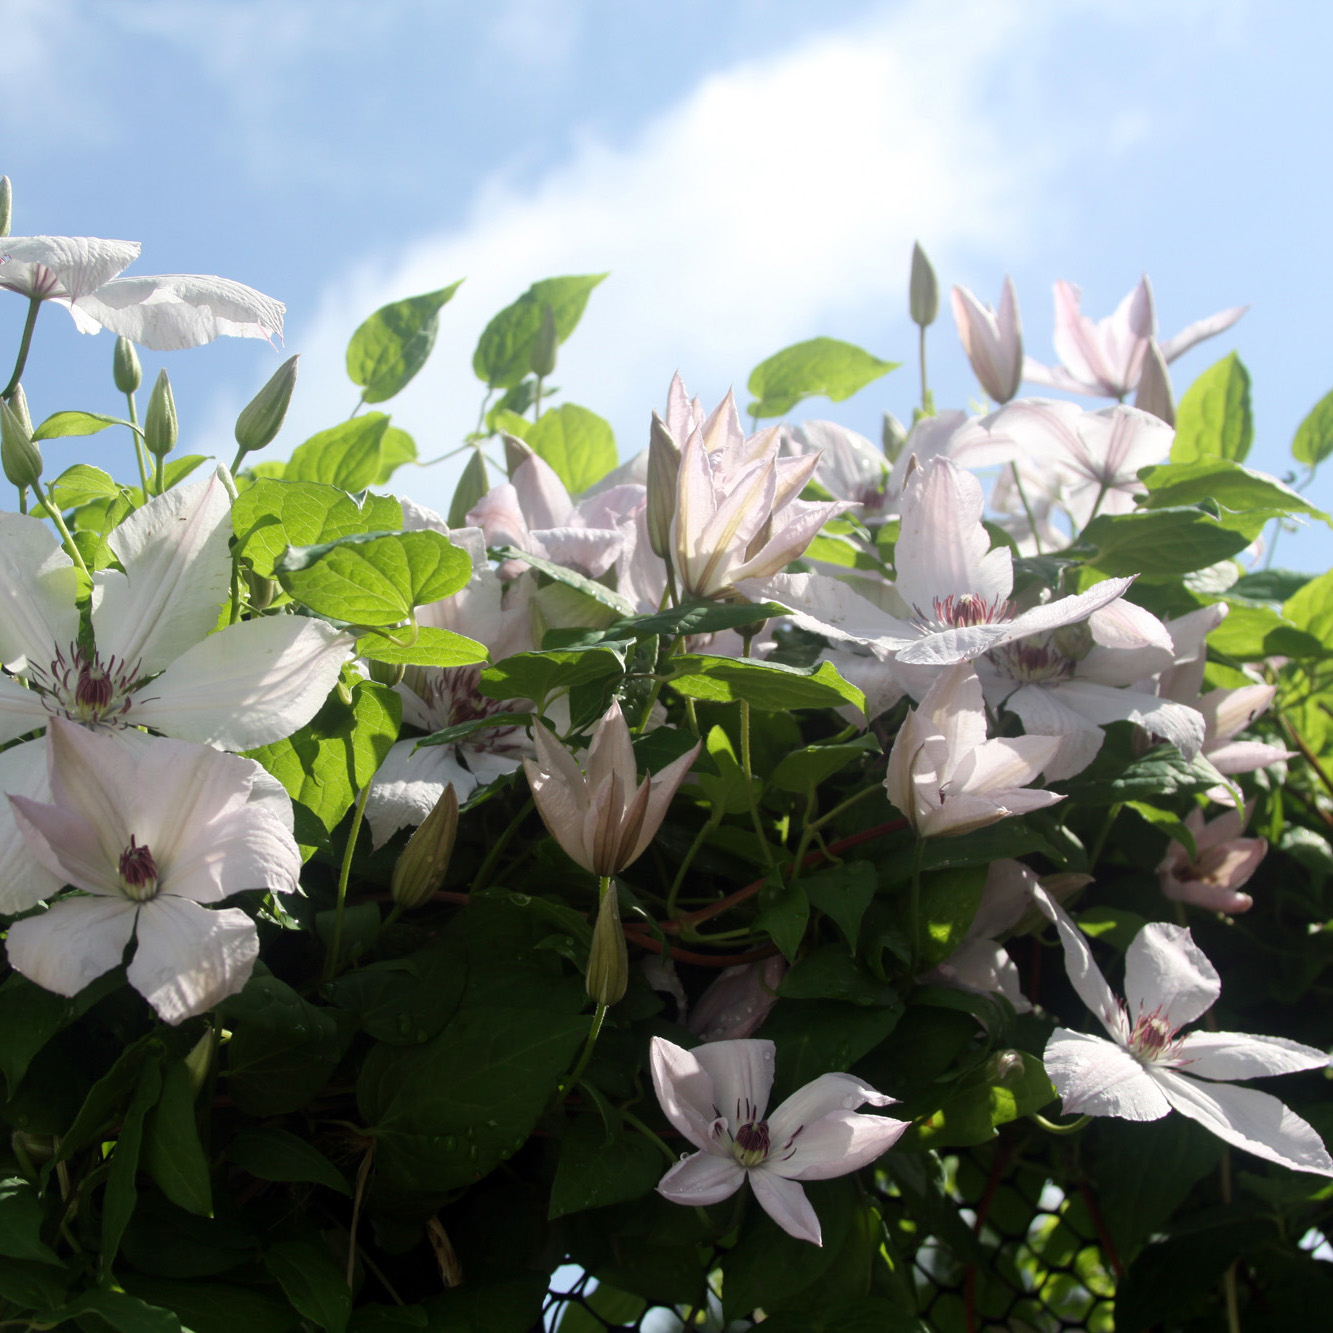 Clematis flowers blooming in my garden